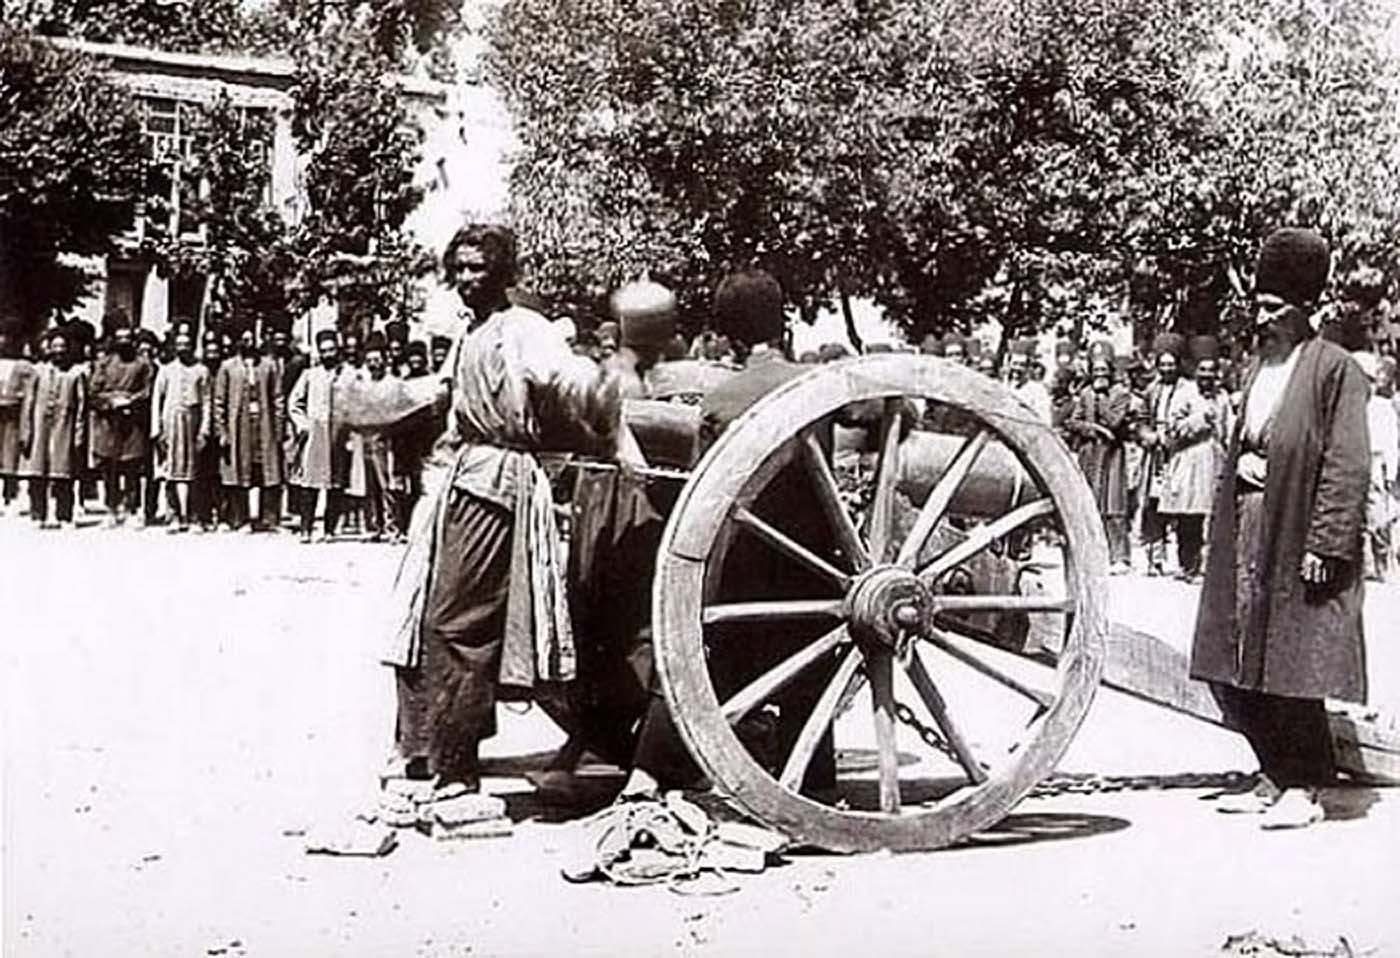 Execution by cannon, Shiraz, Iran. 1890s.